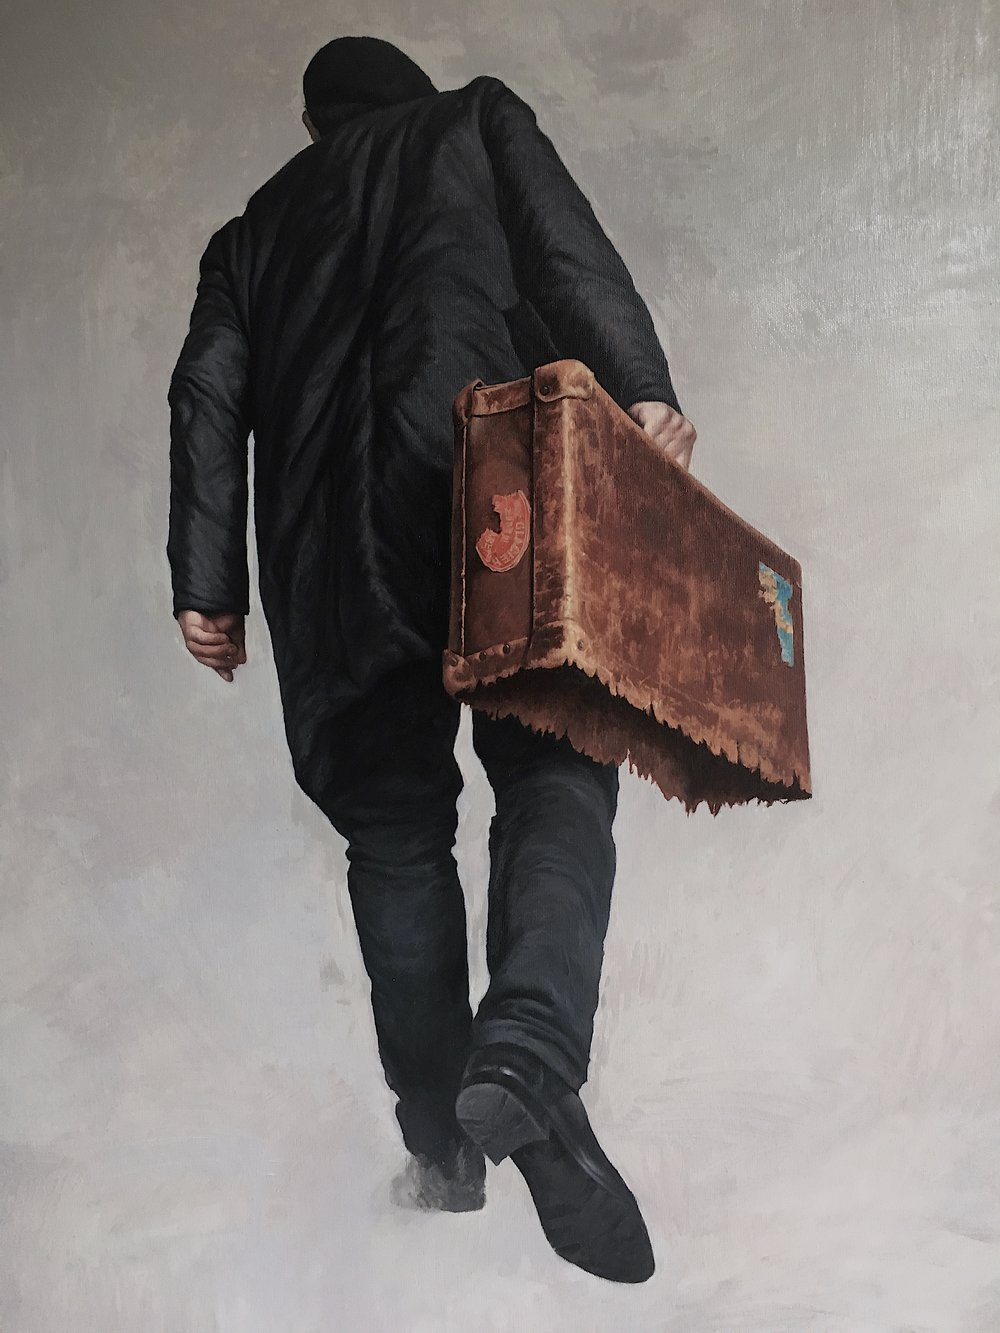 Agim Sulaj, Emigrant, Oil on Canvas, 120x80 cm,  http://www.agimsulaj.com